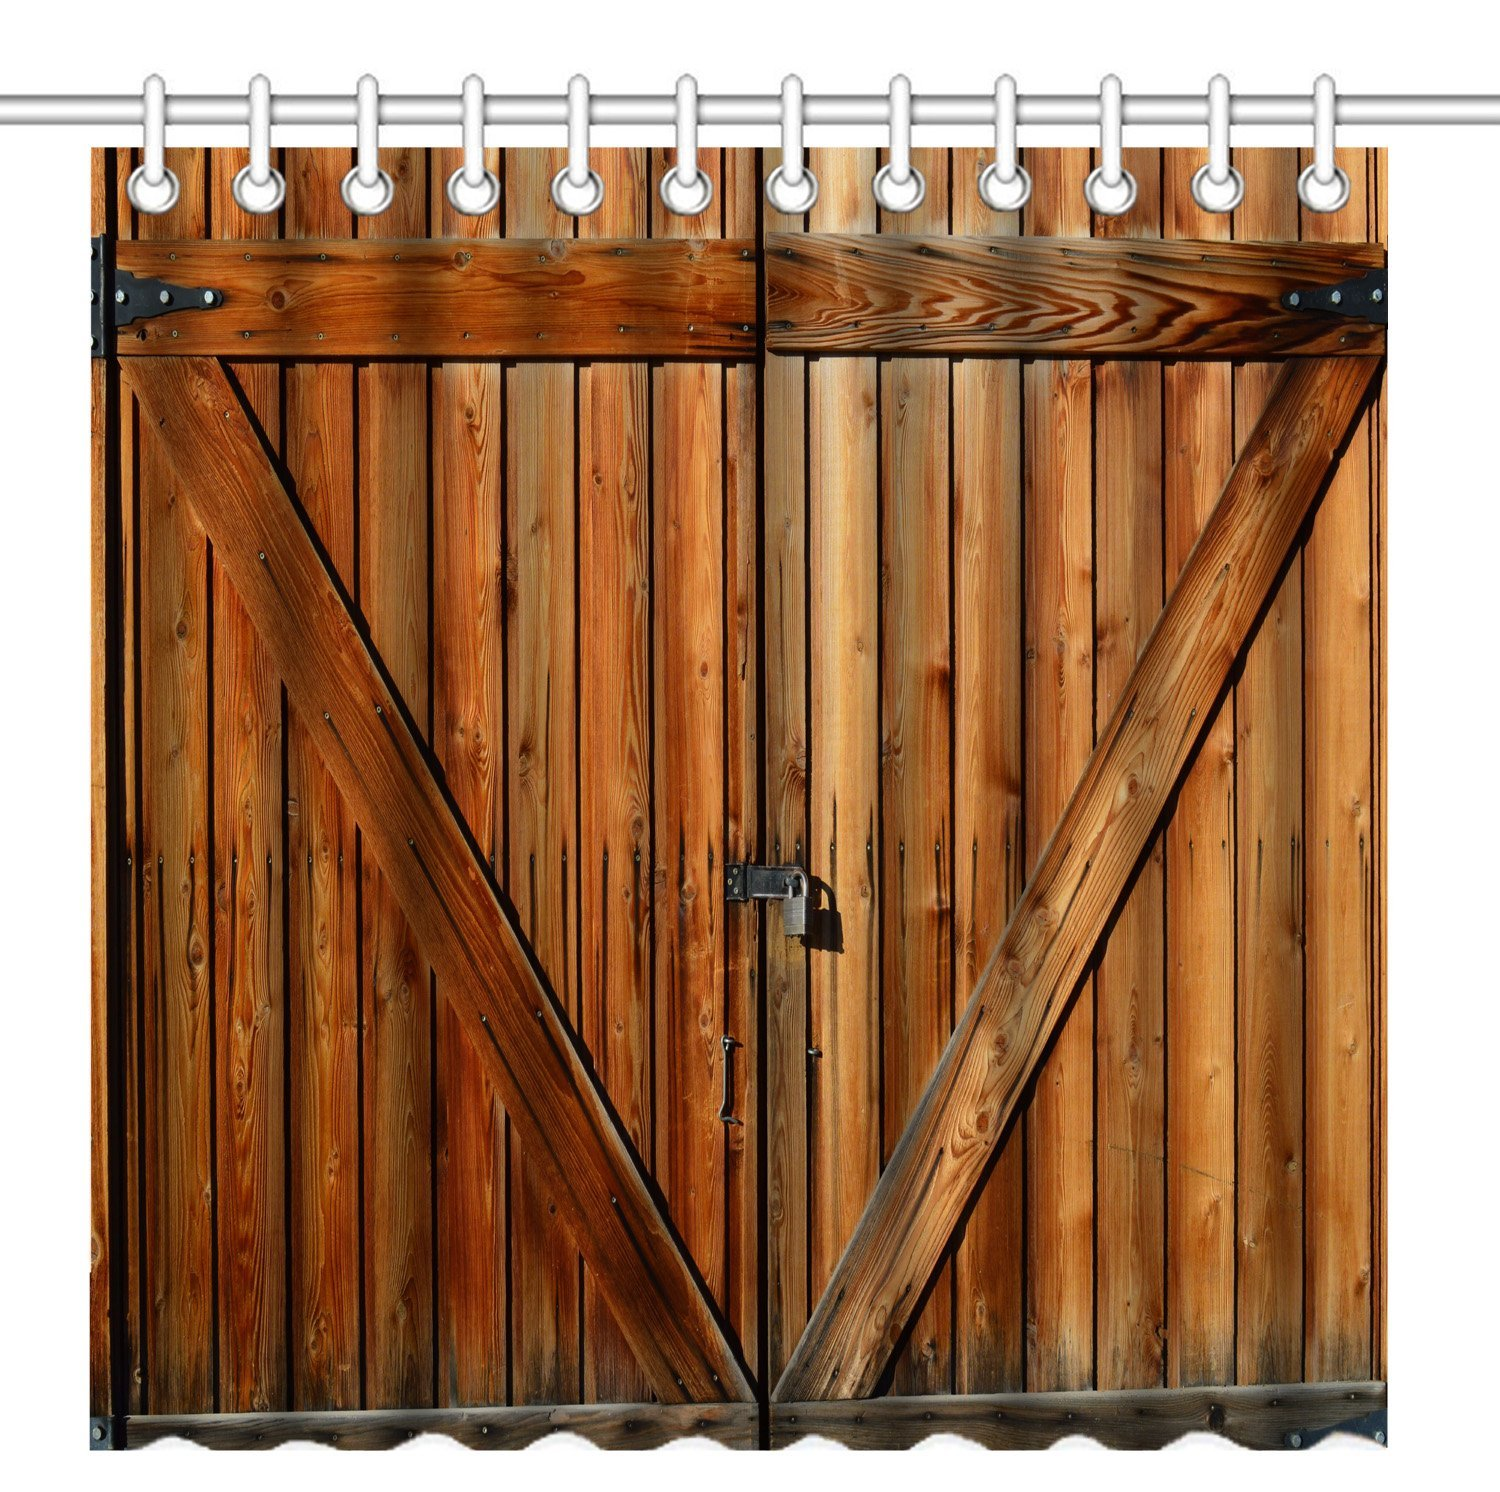 Wknoon 72 x 72 Inch Shower Curtain Set, Vintage Rustic Fence Gate Wood Farm Door